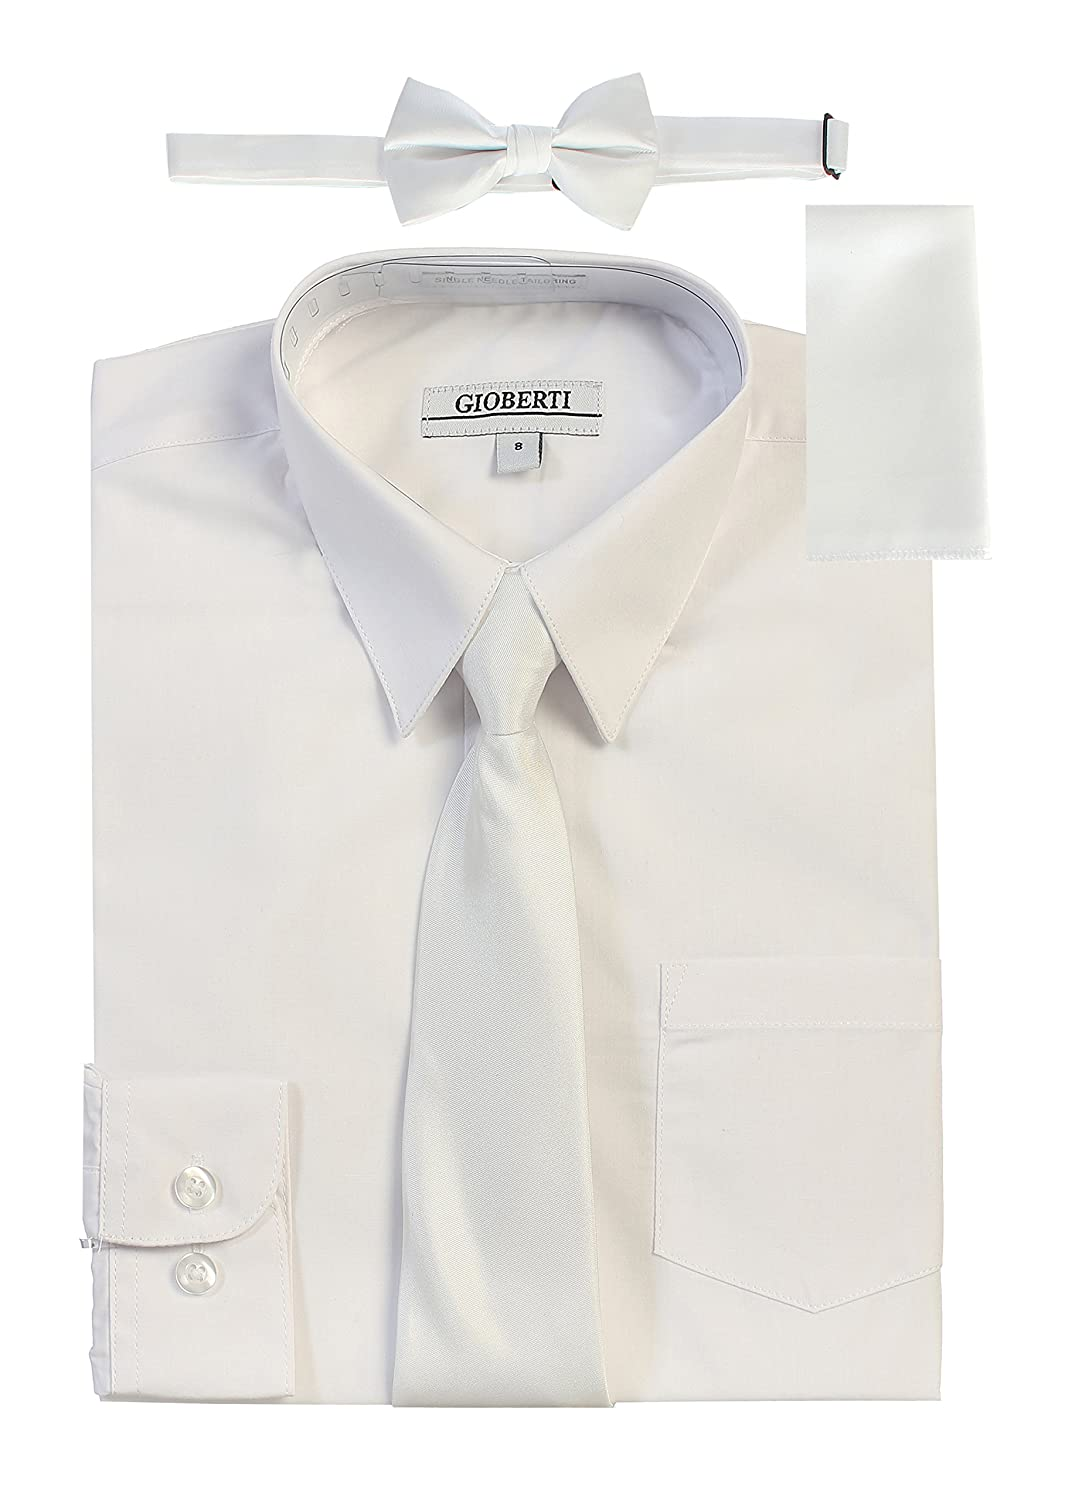 Gioberti Boy's Long Sleeve Dress Shirt + Solid Tie DS-86